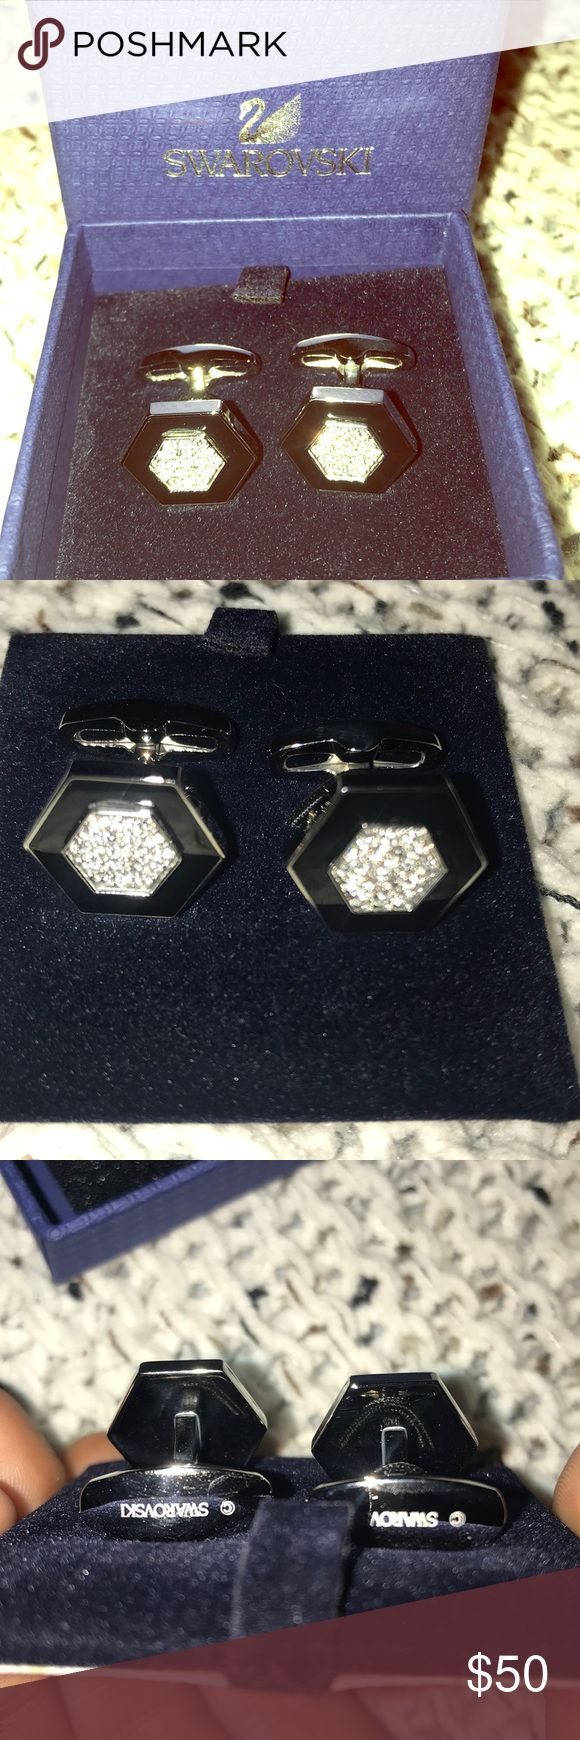 NEVER WORN Swarovski hexagon cufflinks Swarovski hexagon crystal cufflinks with black perimeter. All original packaging. **no trades please. Purchase only. Feel free to make an offer. My closet needs to sell fast!** Thank you!! Swarovski Accessories Cuff Links